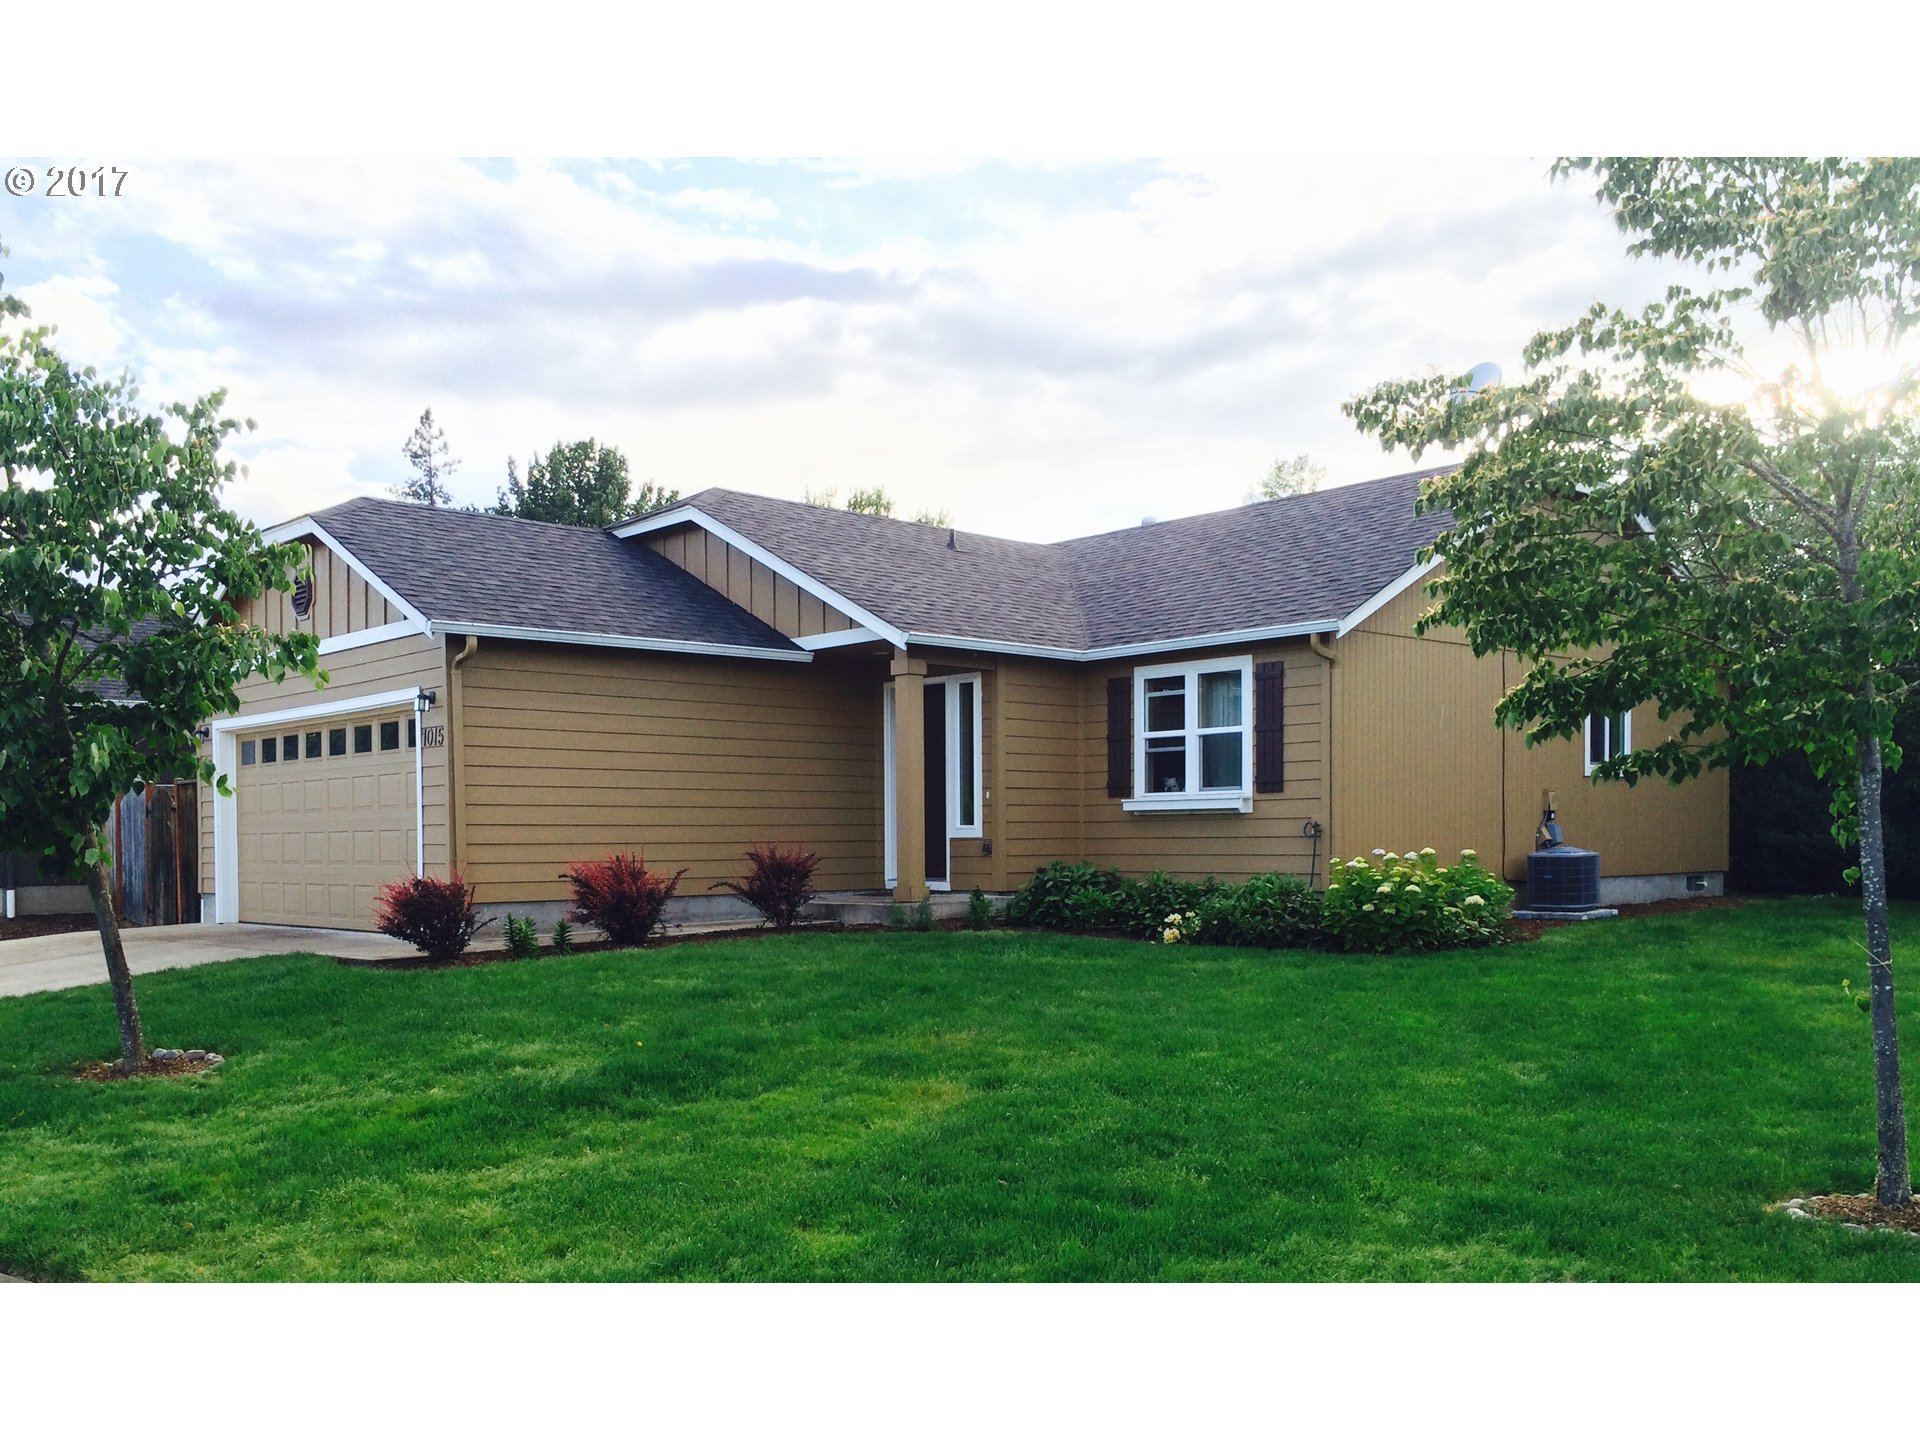 1015 S 1ST ST, Cottage Grove, OR 97424